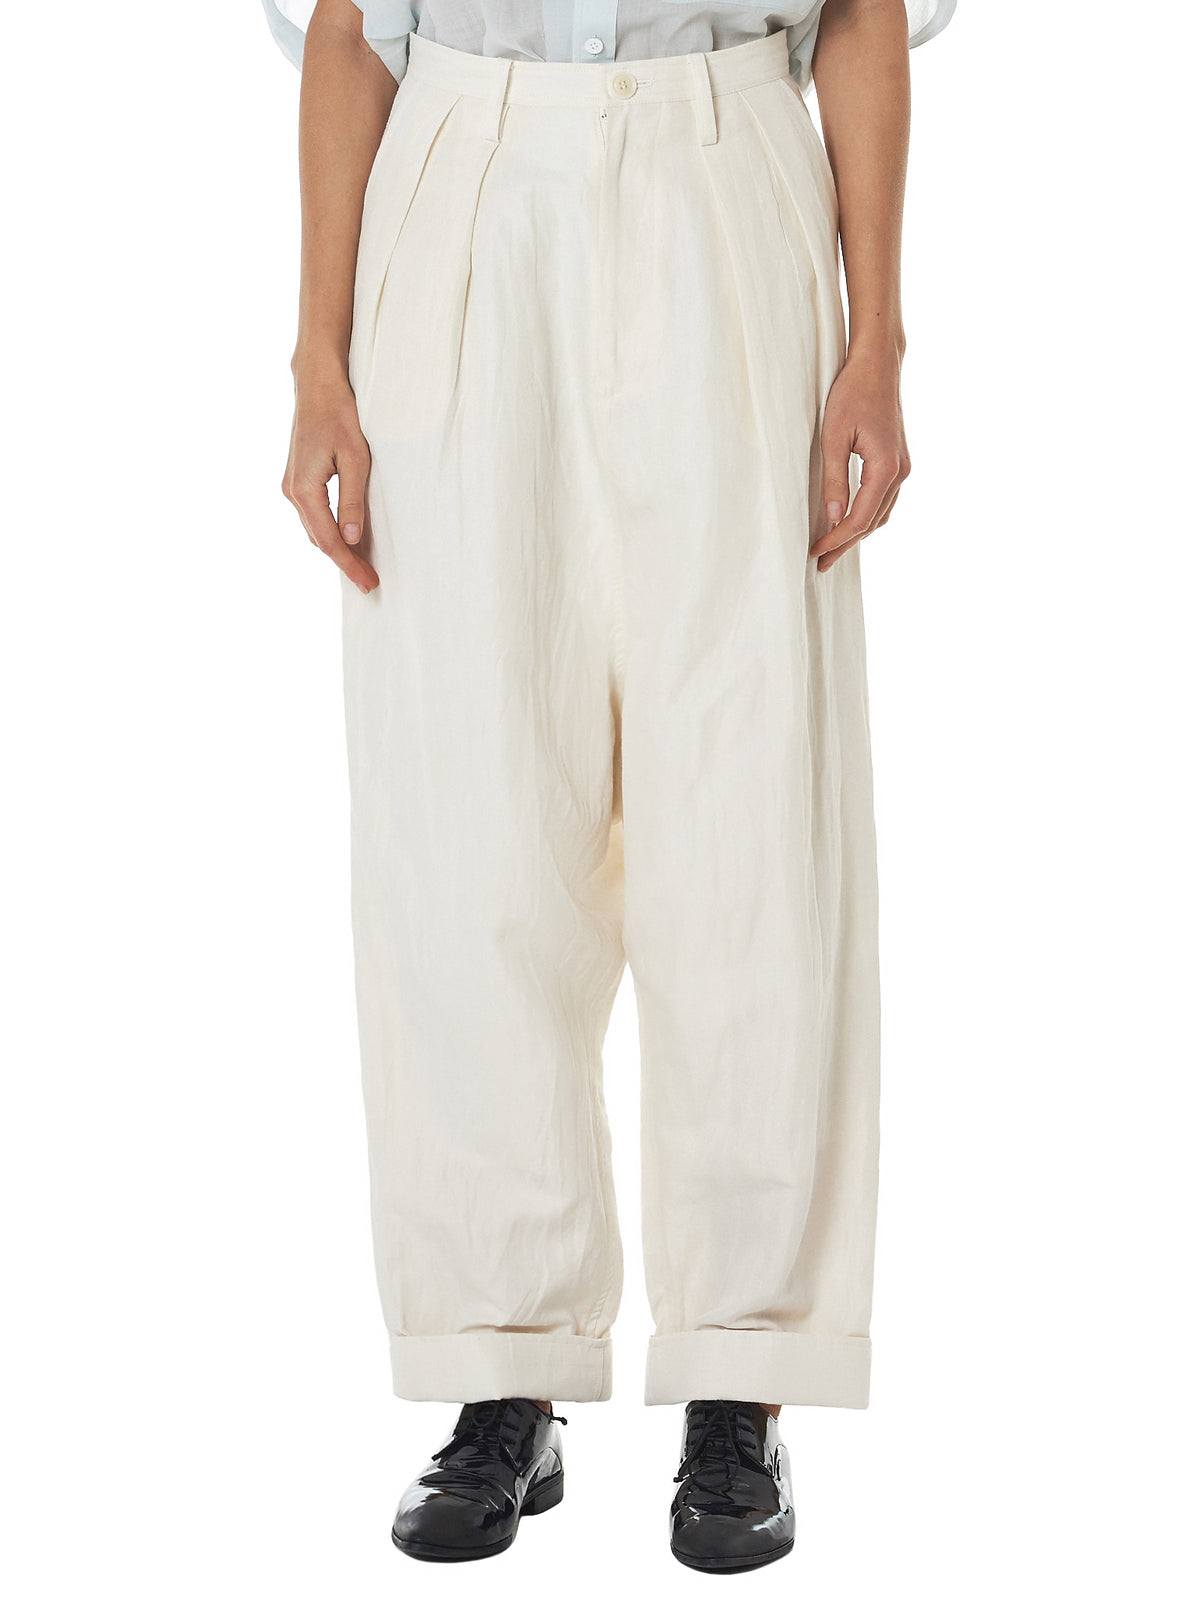 Mixed Twill Trousers (YW-P15-009-IVORY)